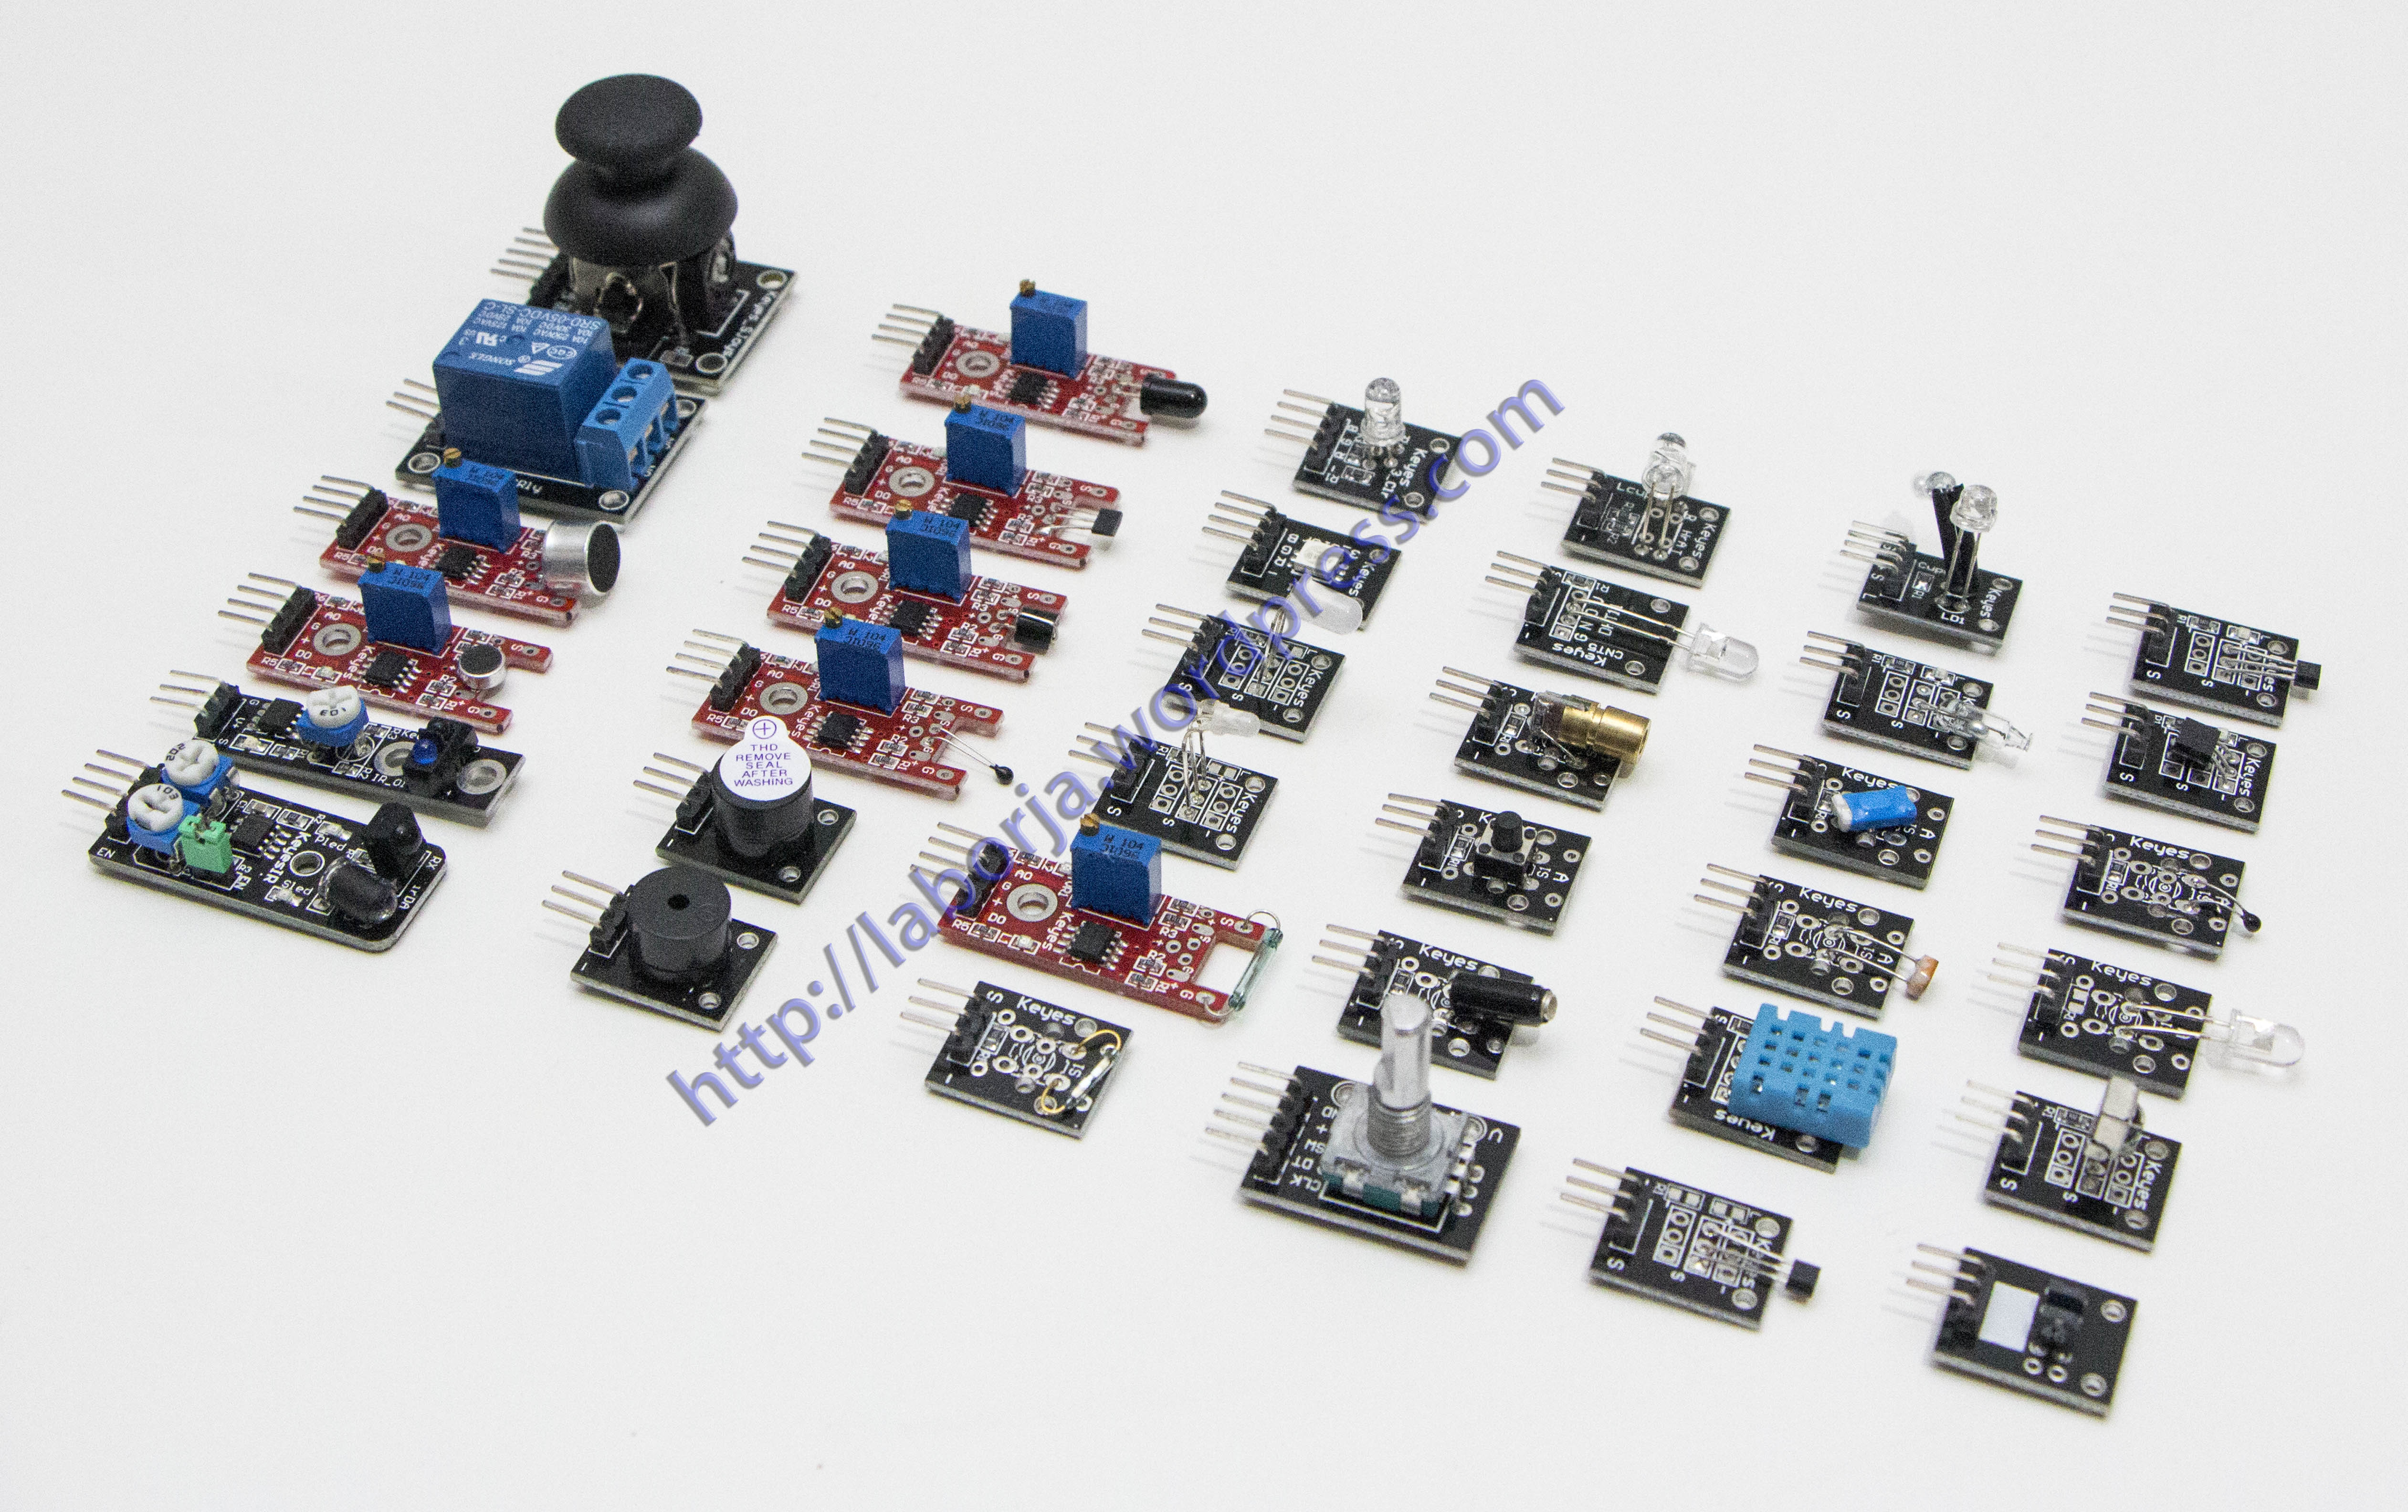 37 In 1 Sensor Kit For Arduino Borja Home Page Copper Clad Boards 10x15cm 100x150x12mm High Quality Circuit Pcb